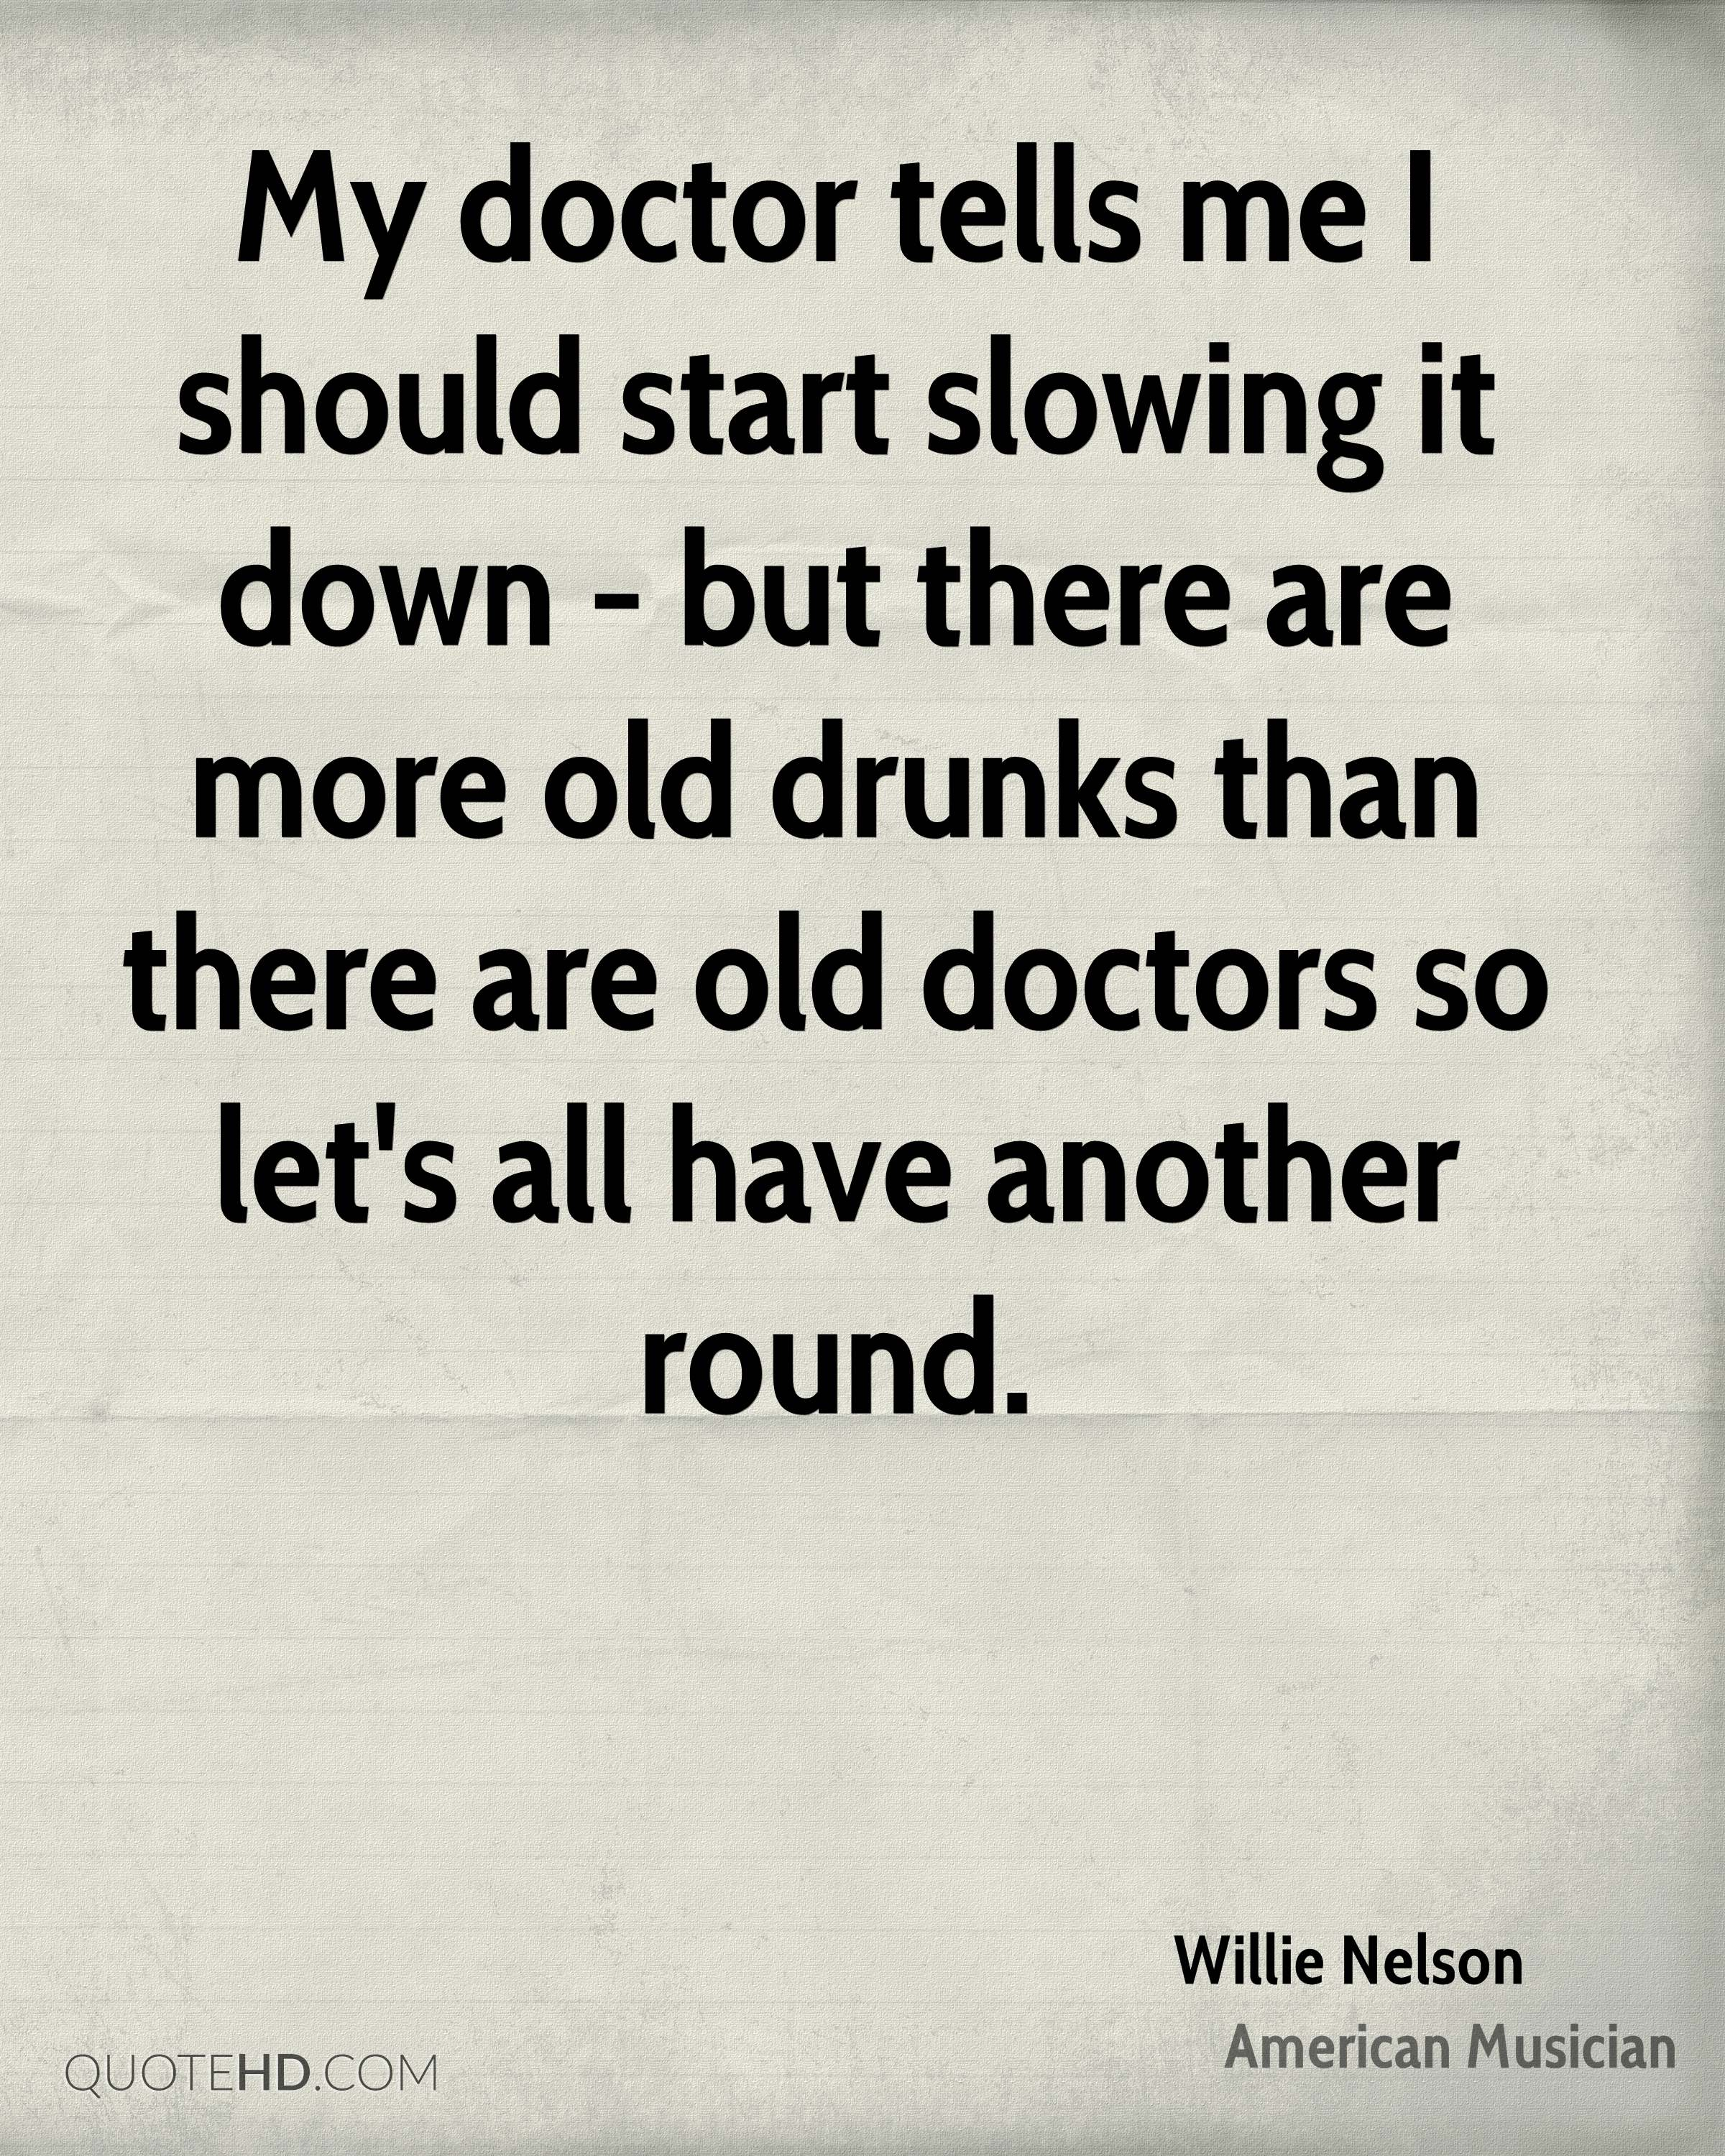 My doctor tells me I should start slowing it down - but there are more old drunks than there are old doctors so let's all have another round.